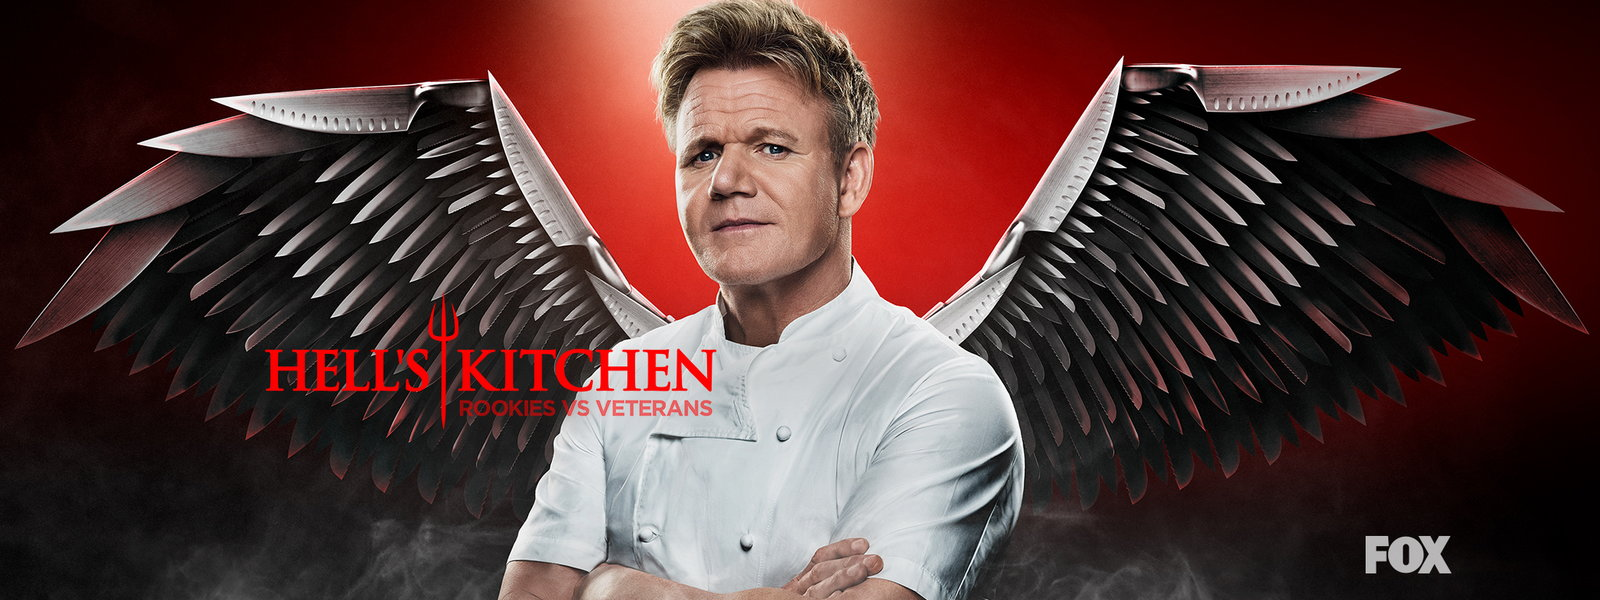 watch hell's kitchen online at hulu